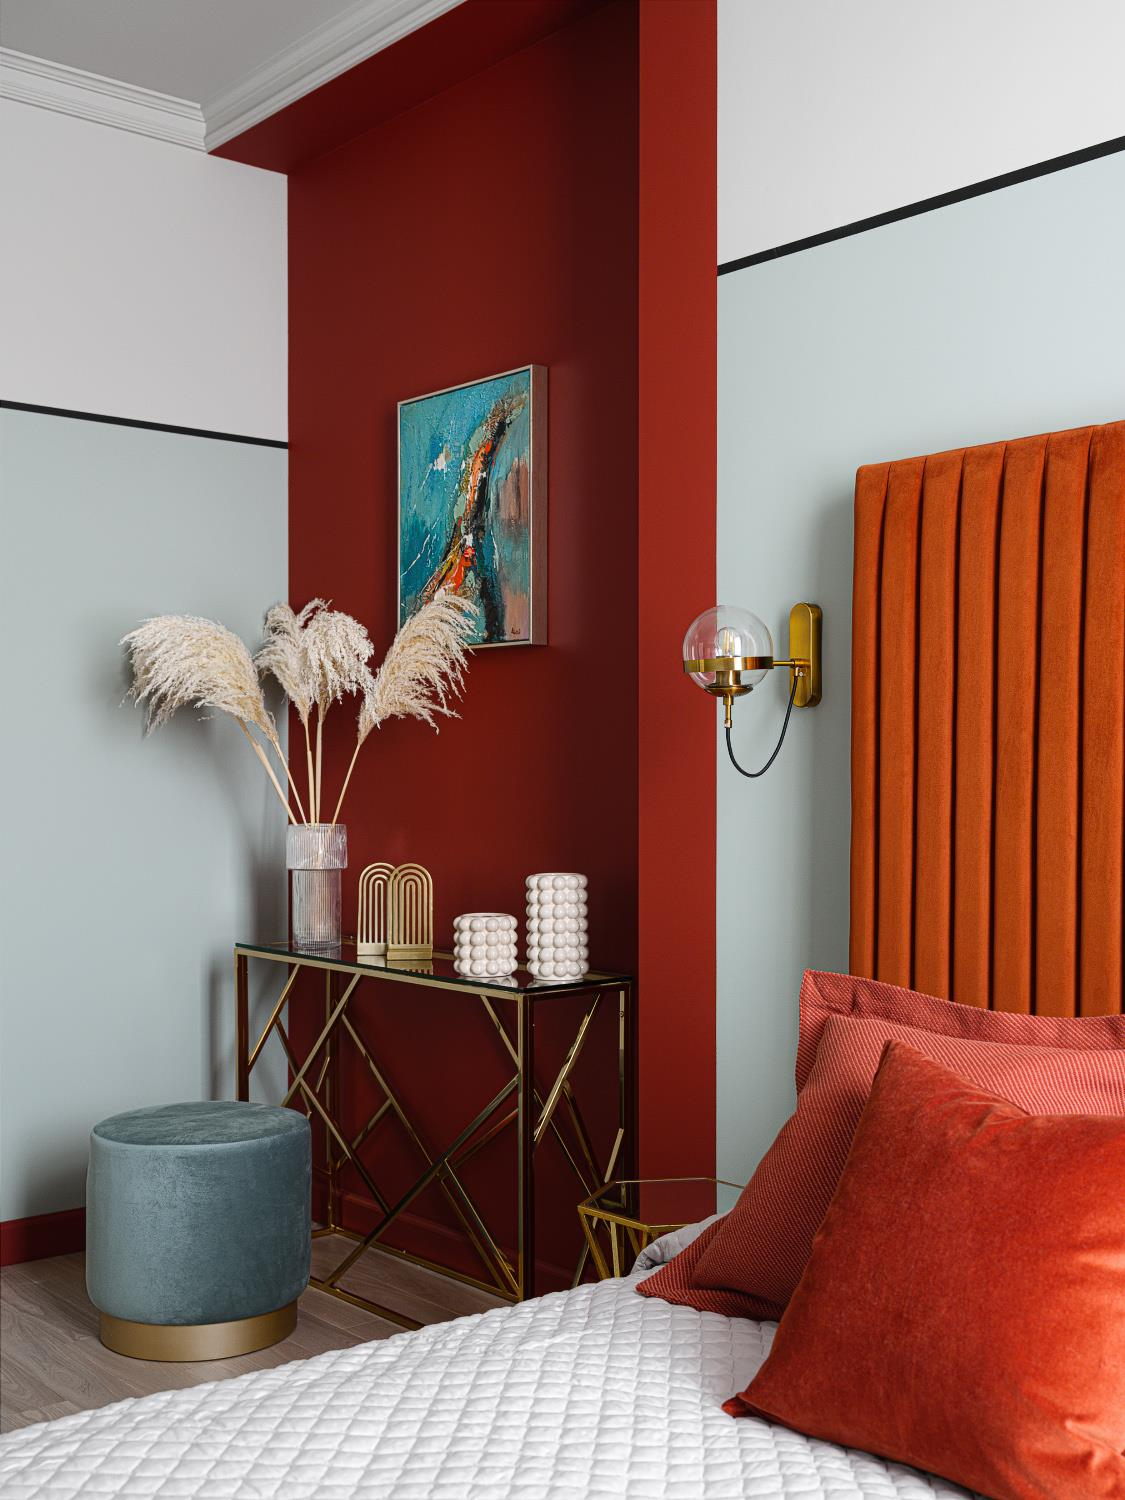 Bedroom with orange pops of color